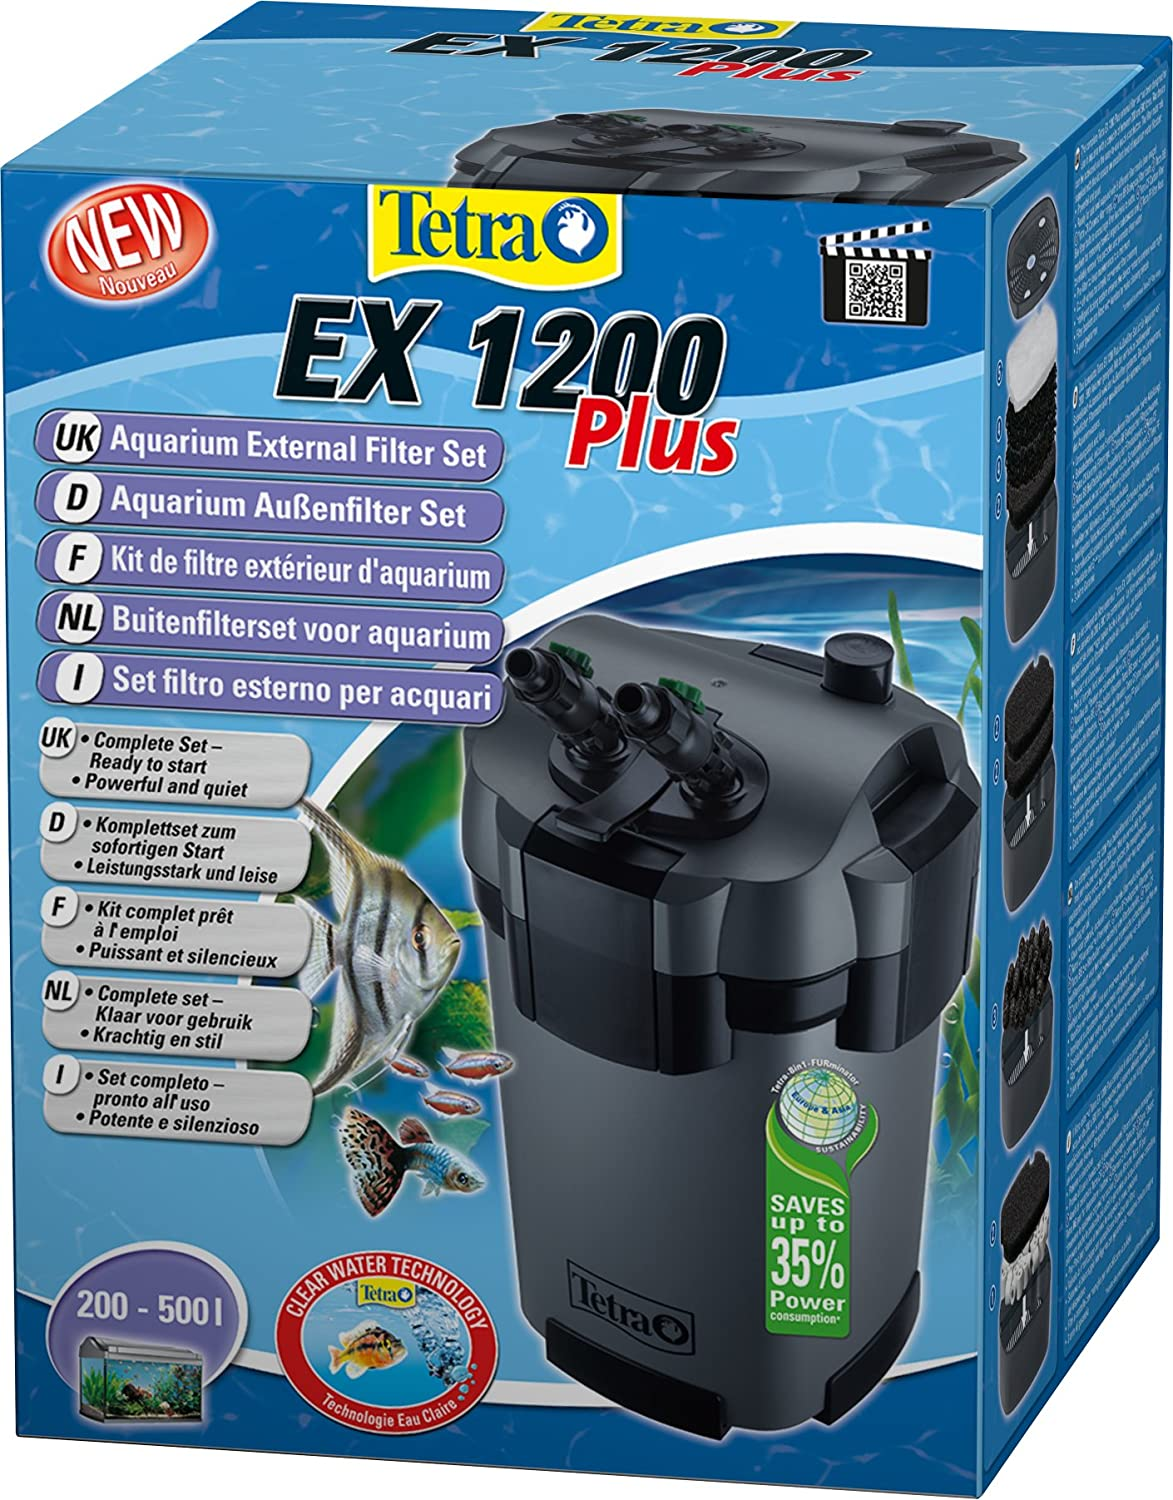 81 hGpfR69L._SL1500_ tetra tec ex 700 external filter amazon co uk pet supplies  at mifinder.co